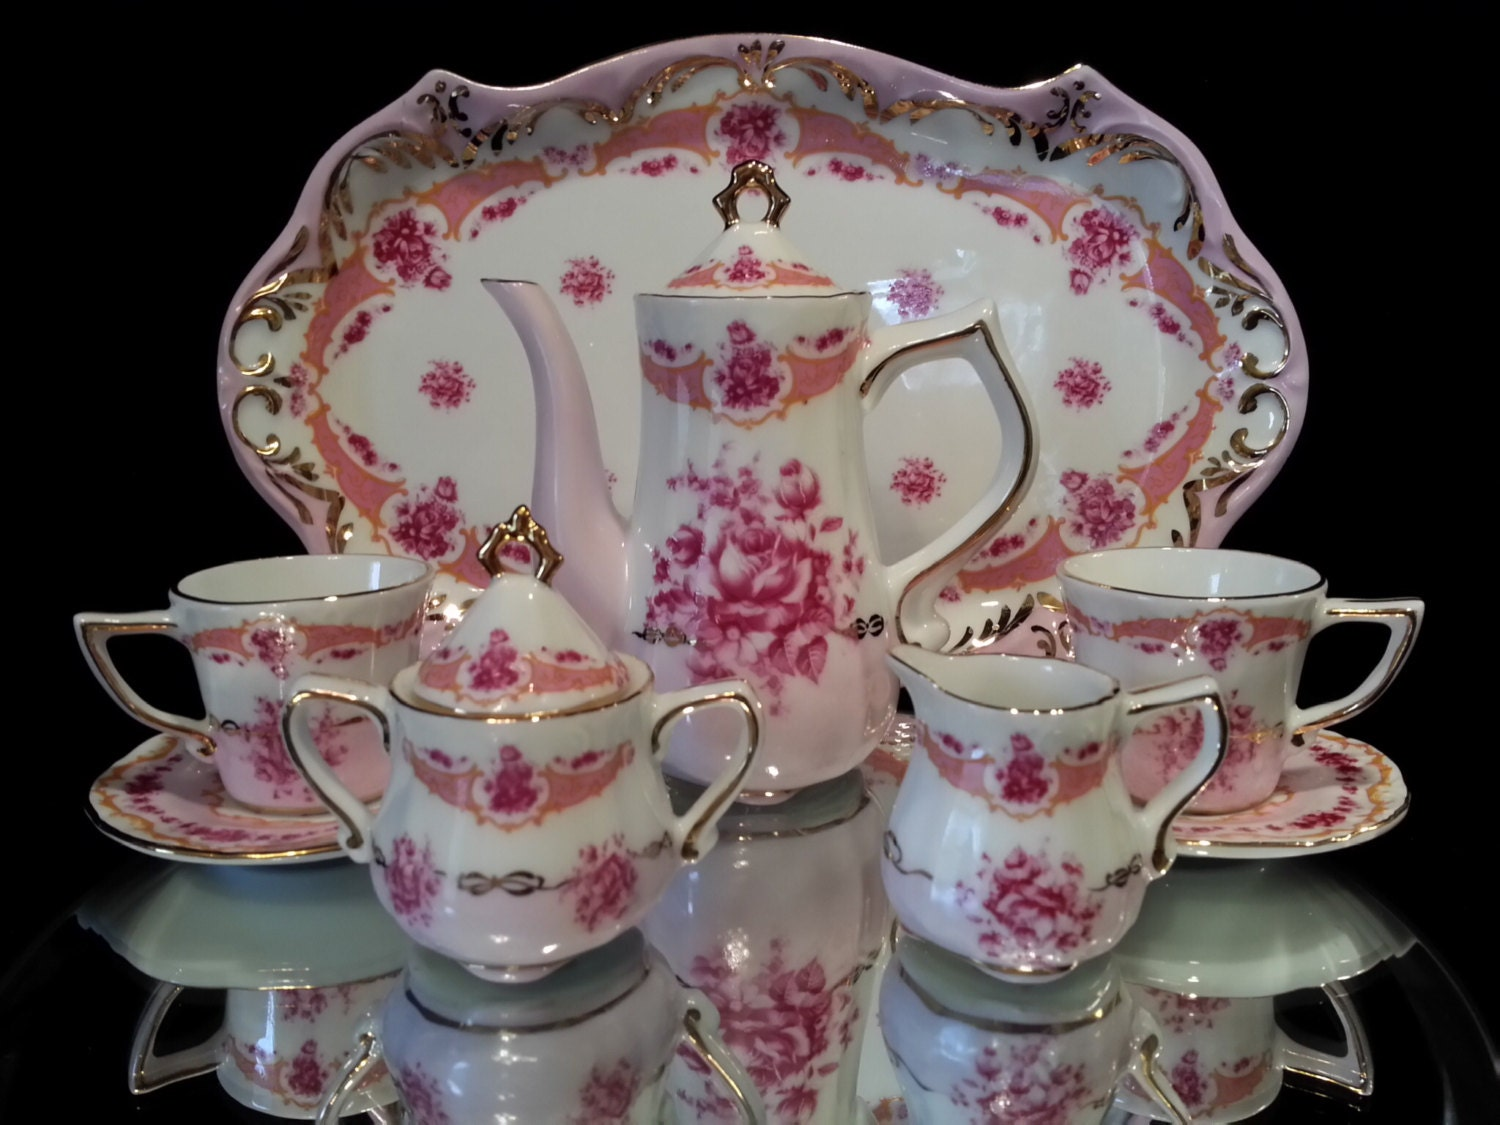 10 piece mini limoges france porcelain by oldgloriestatesale. Black Bedroom Furniture Sets. Home Design Ideas